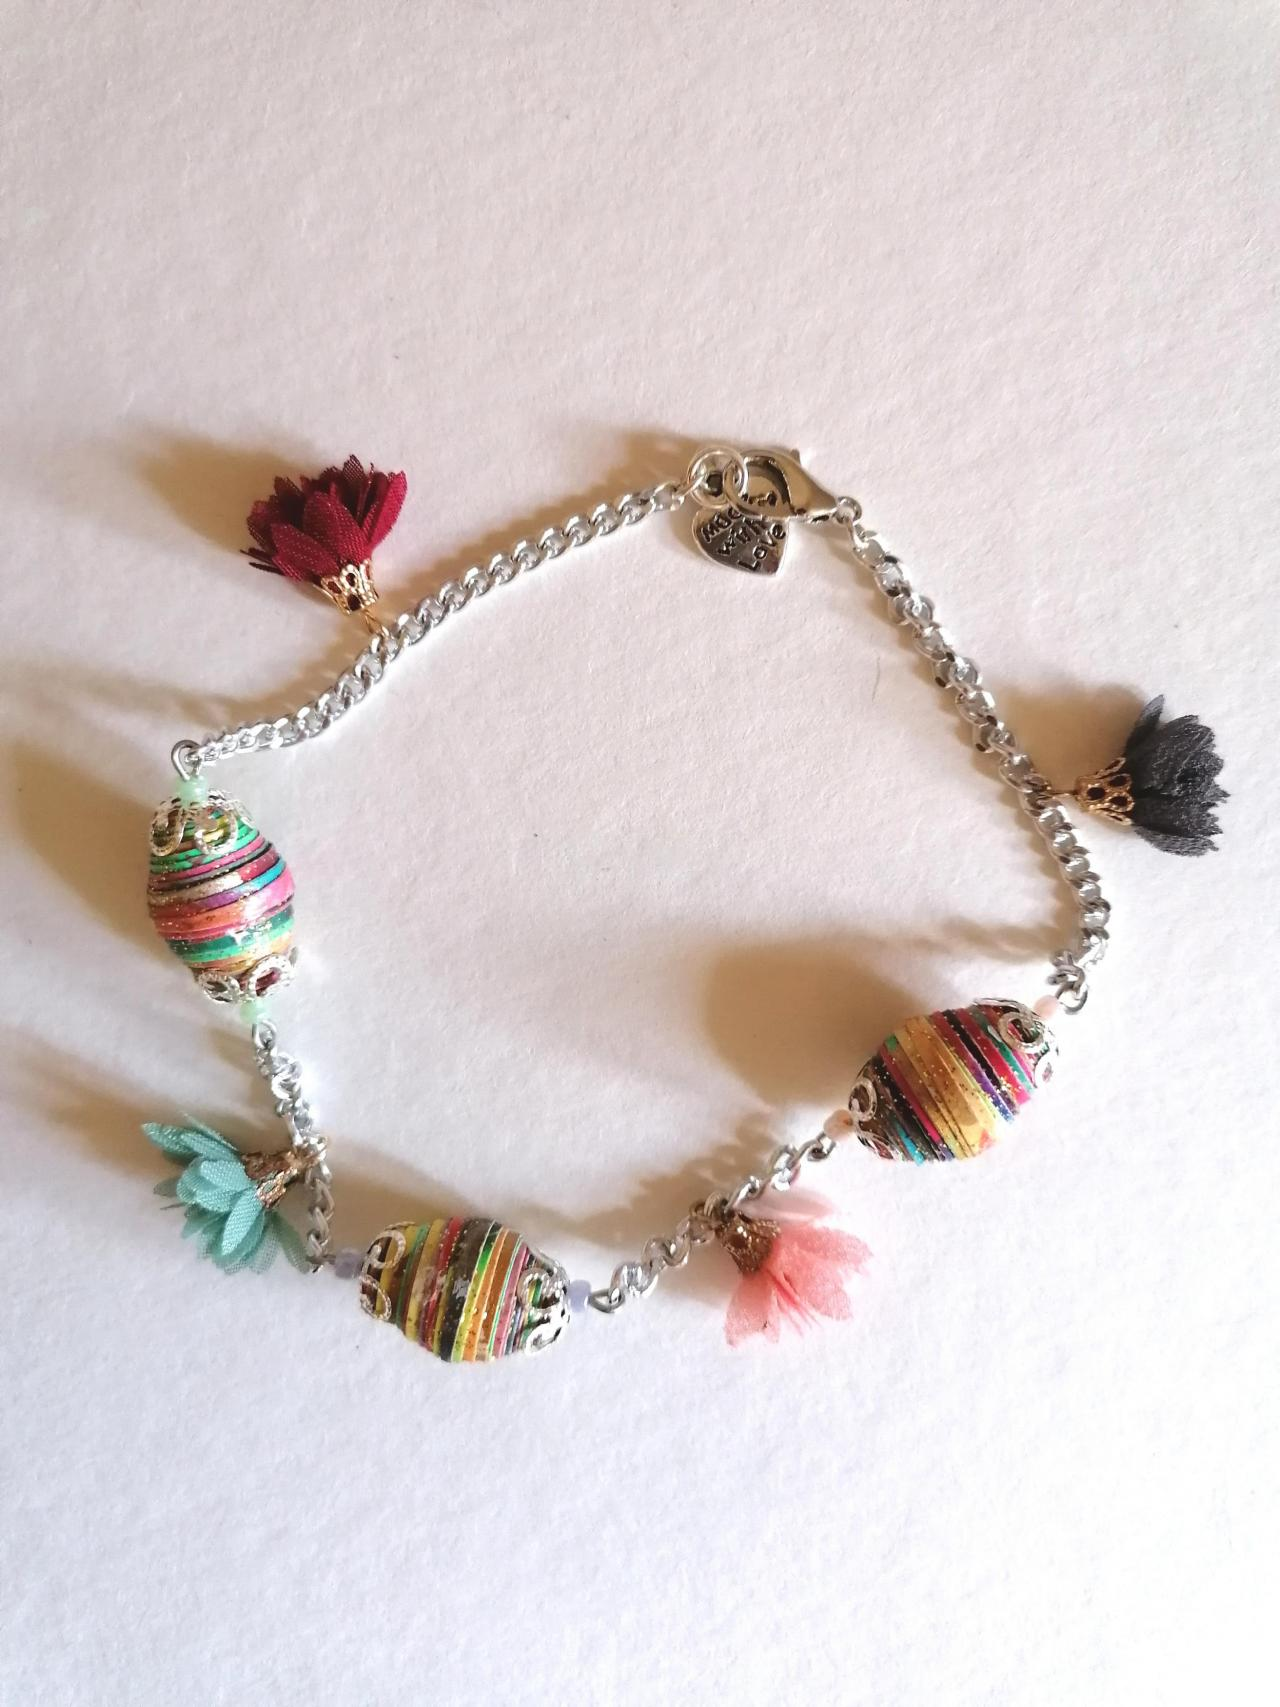 Frida boutique collection - 'Frida flower' anklet